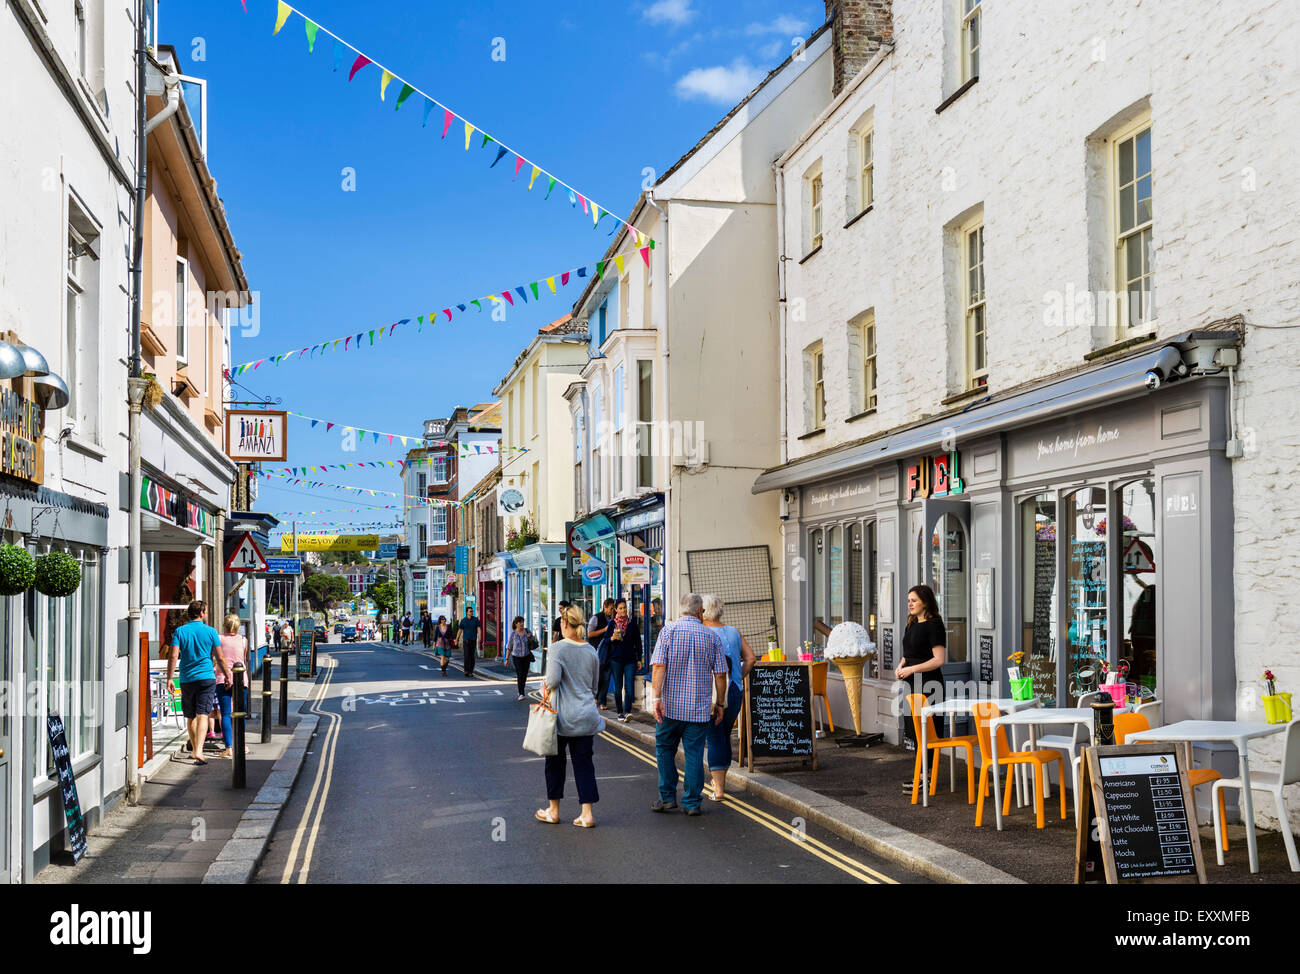 Shops on Arwenack Street in the town centre, Falmouth, Cornwall, England, UK - Stock Image